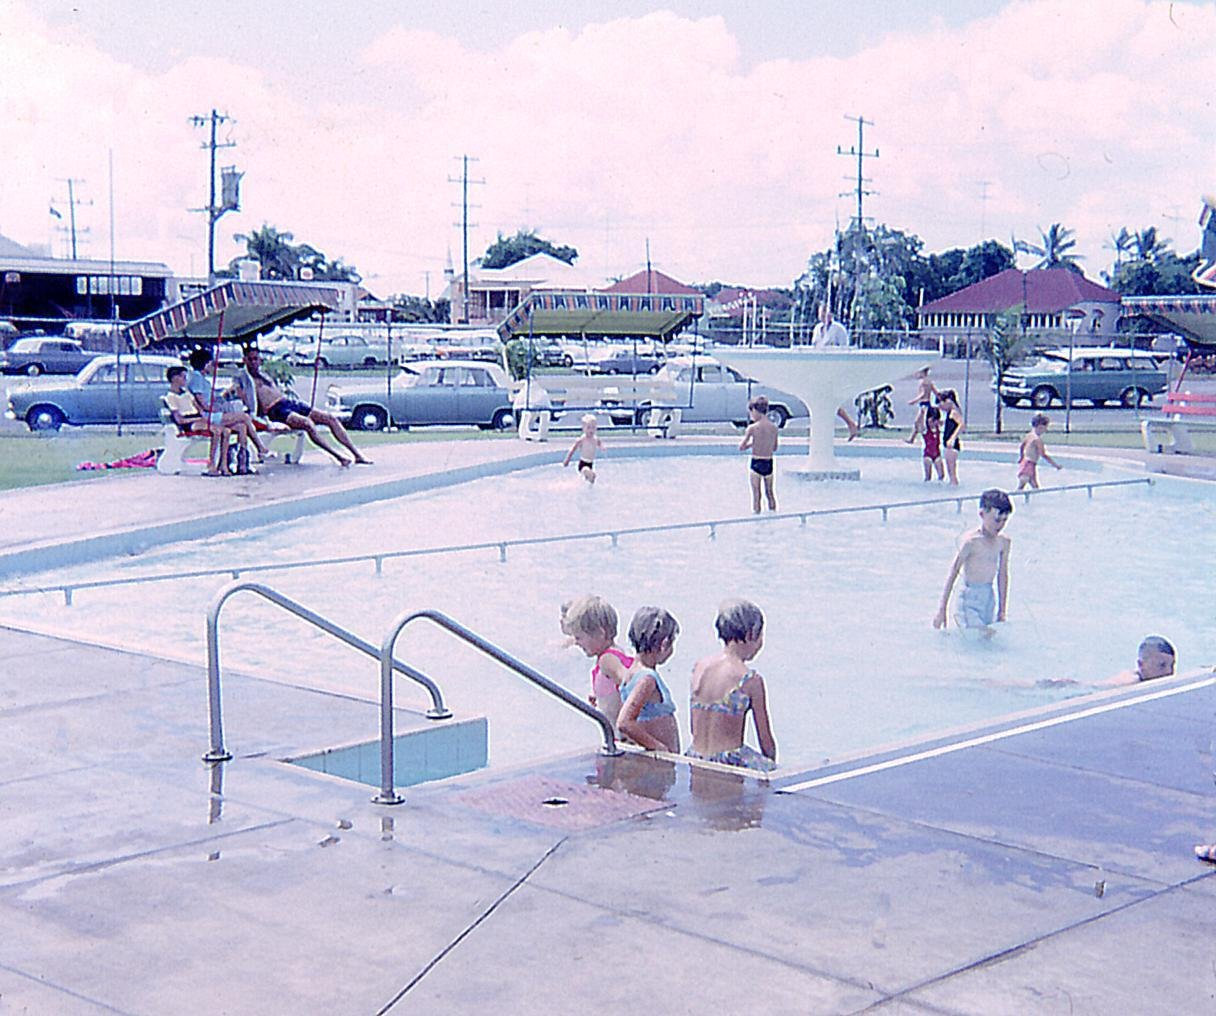 1963: Opening of the Mackay War Memorial Swimming Pool in Milton Street. Built at a cost of 90,000 pounds. Opened by Postmaster-General COW.. Davidson. Family fun at the Memorial Swimming Pool.PhotoContributed